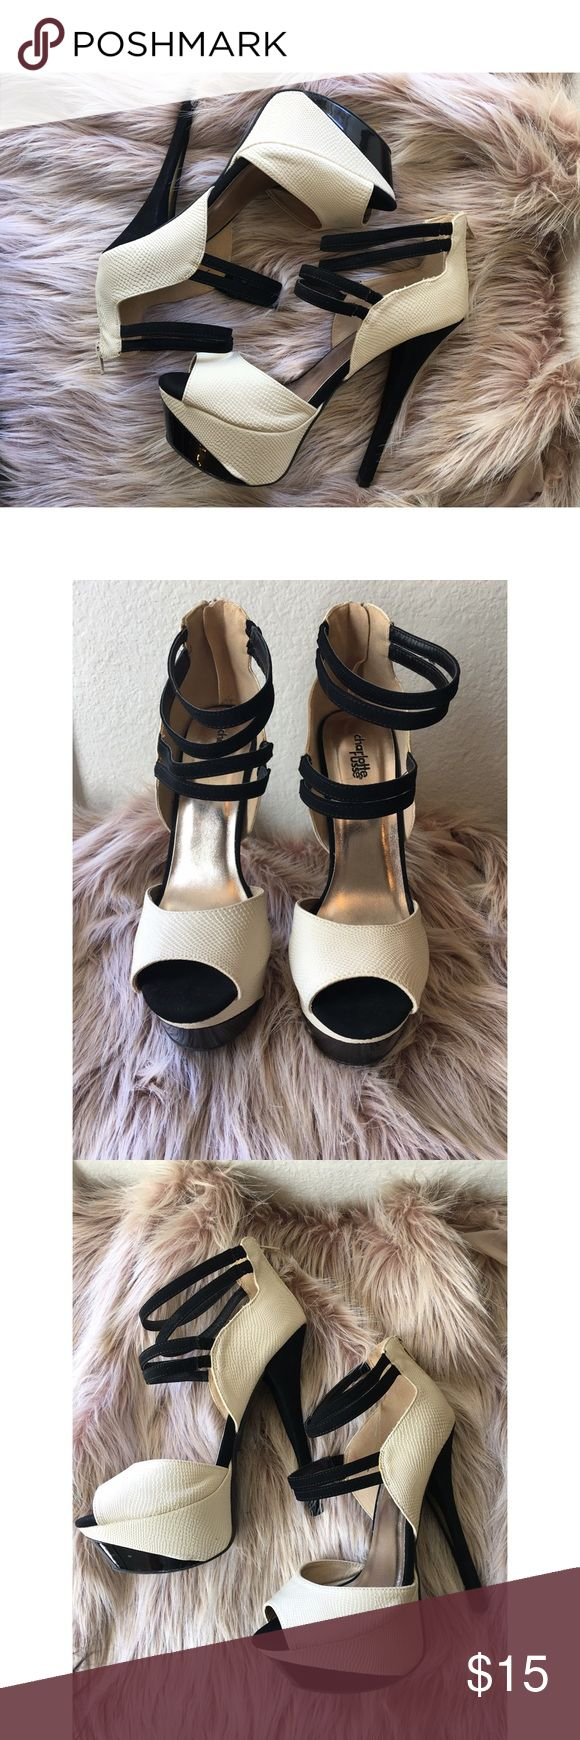 Charlotte Russe heels Super cute high heels! Really comfortable in great condition! Charlotte Russe Shoes Heels